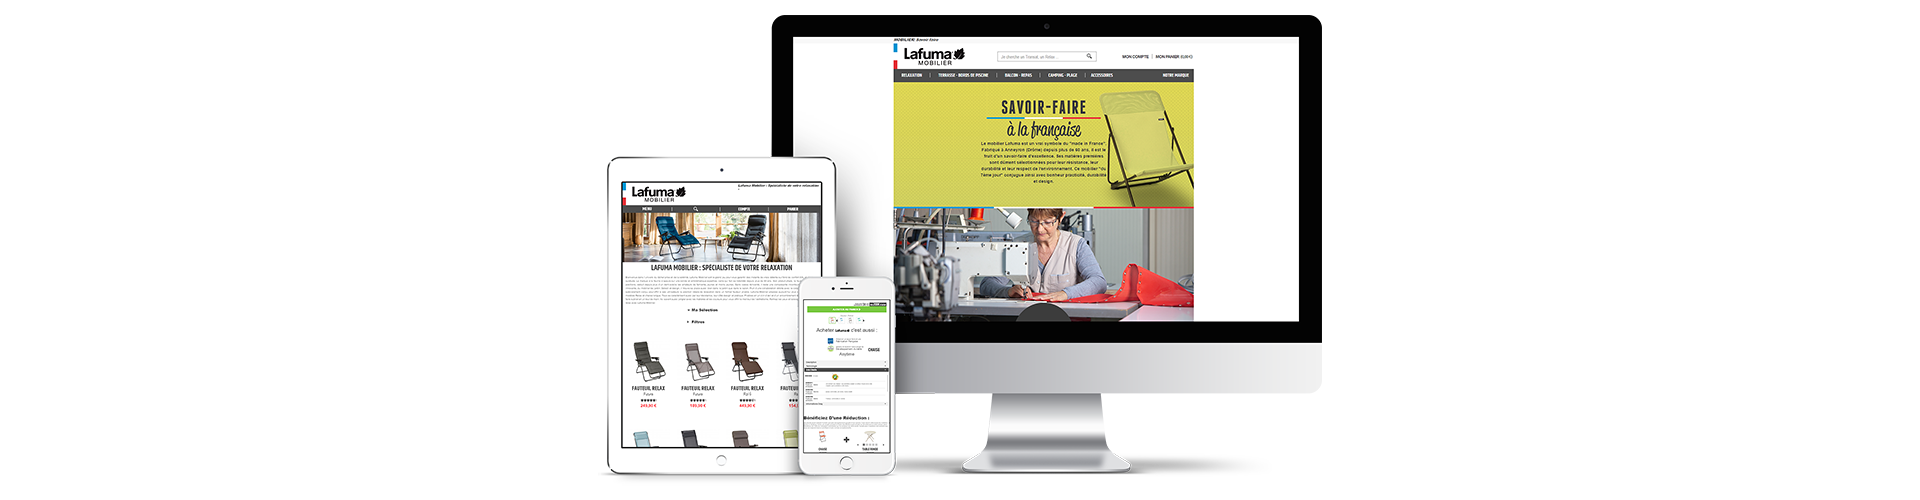 lafuma magento devices